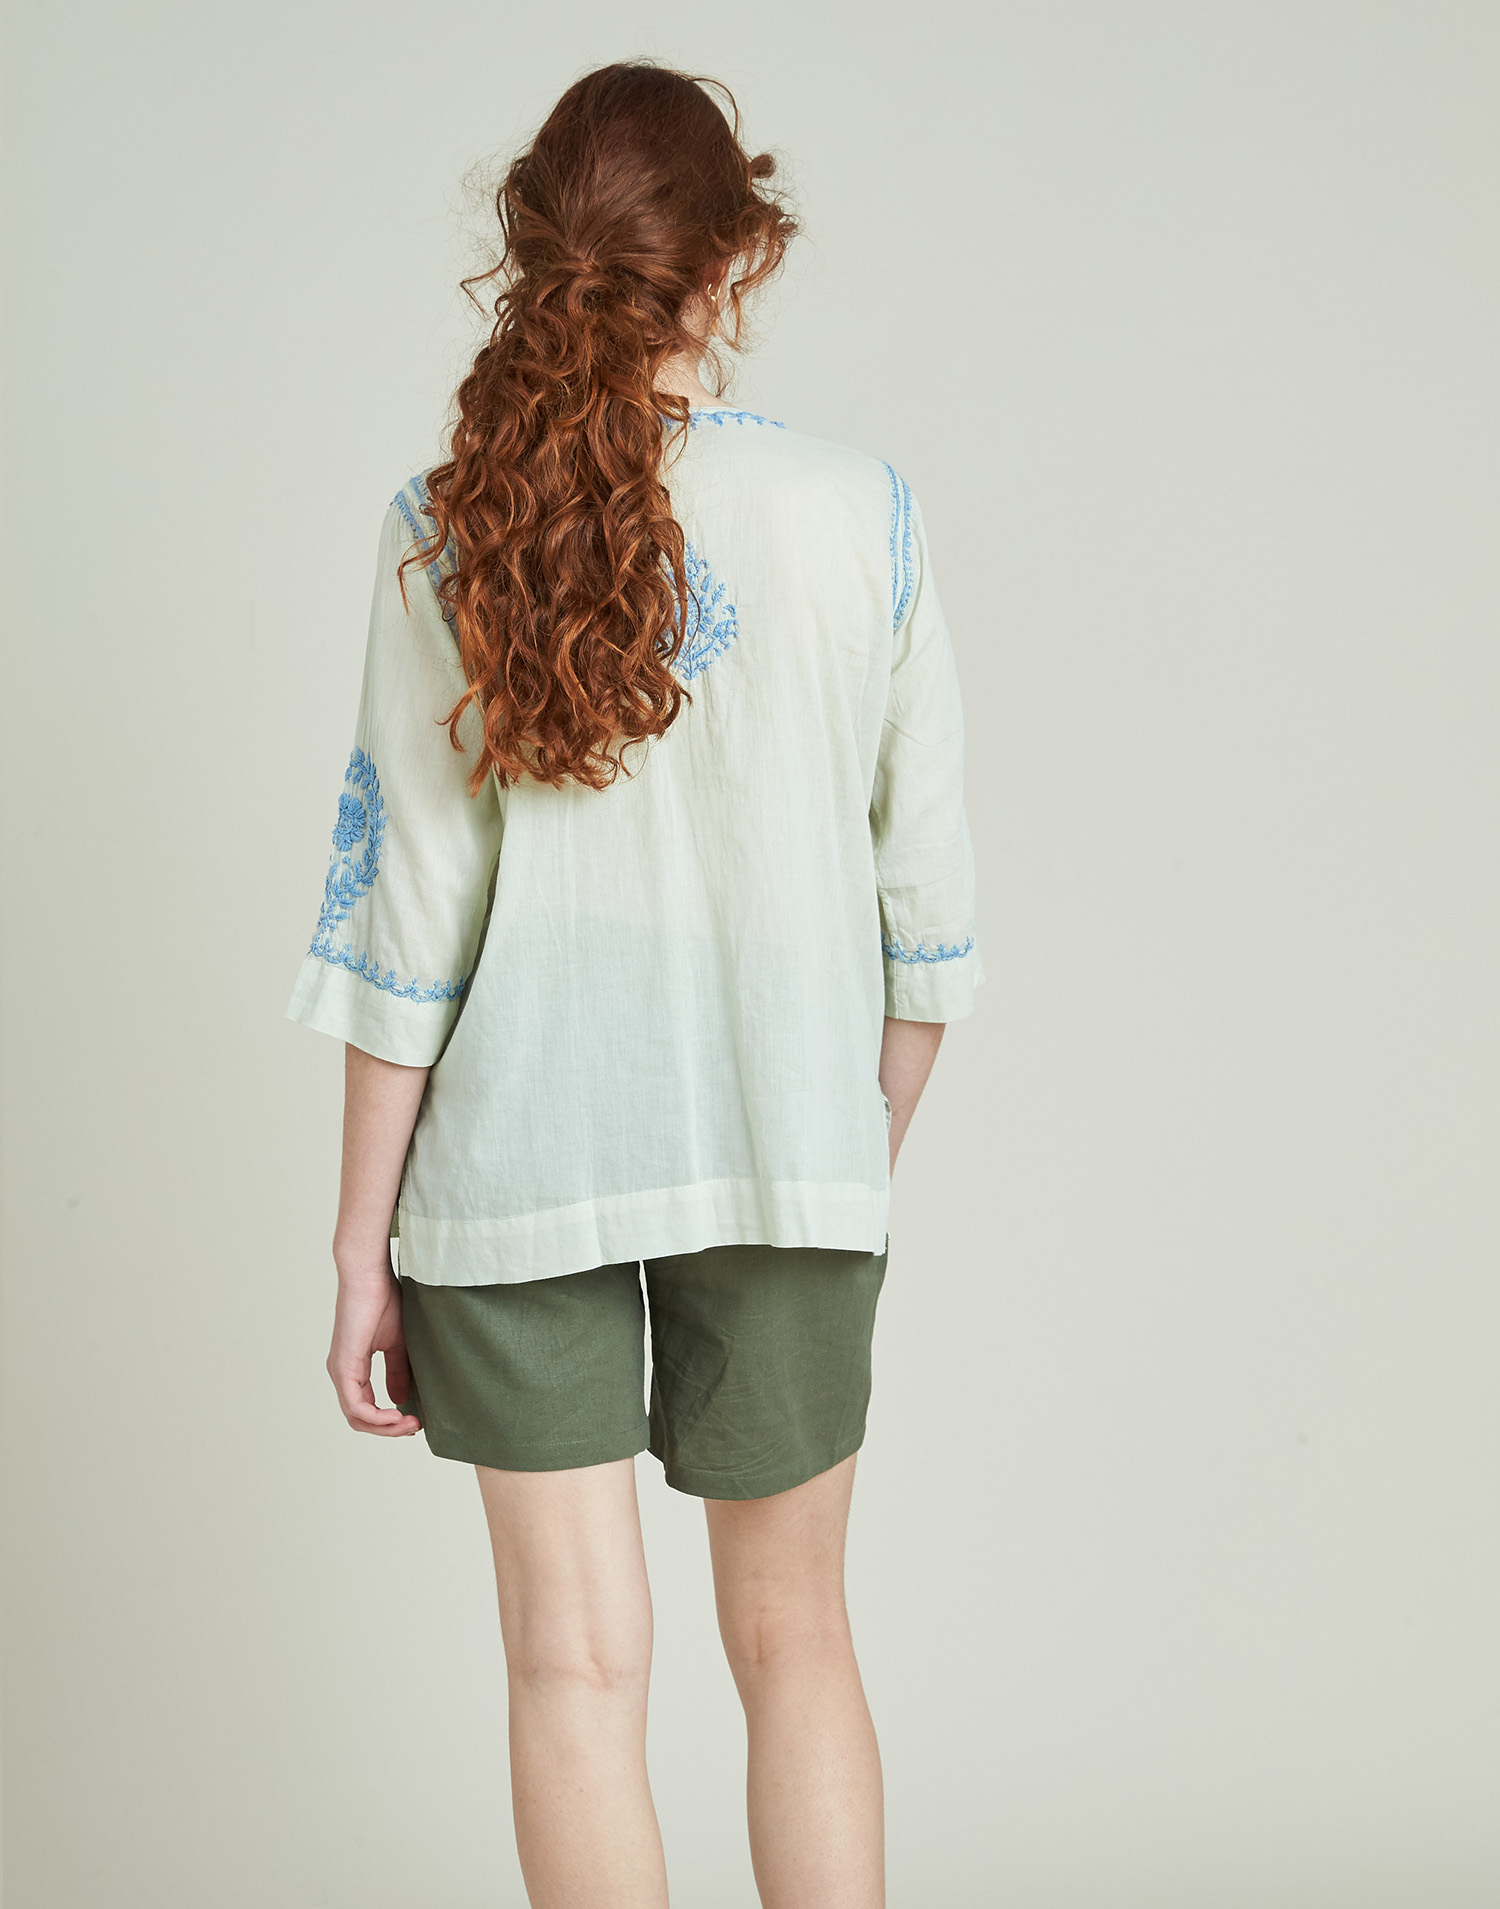 Oriental style embroidered shirt